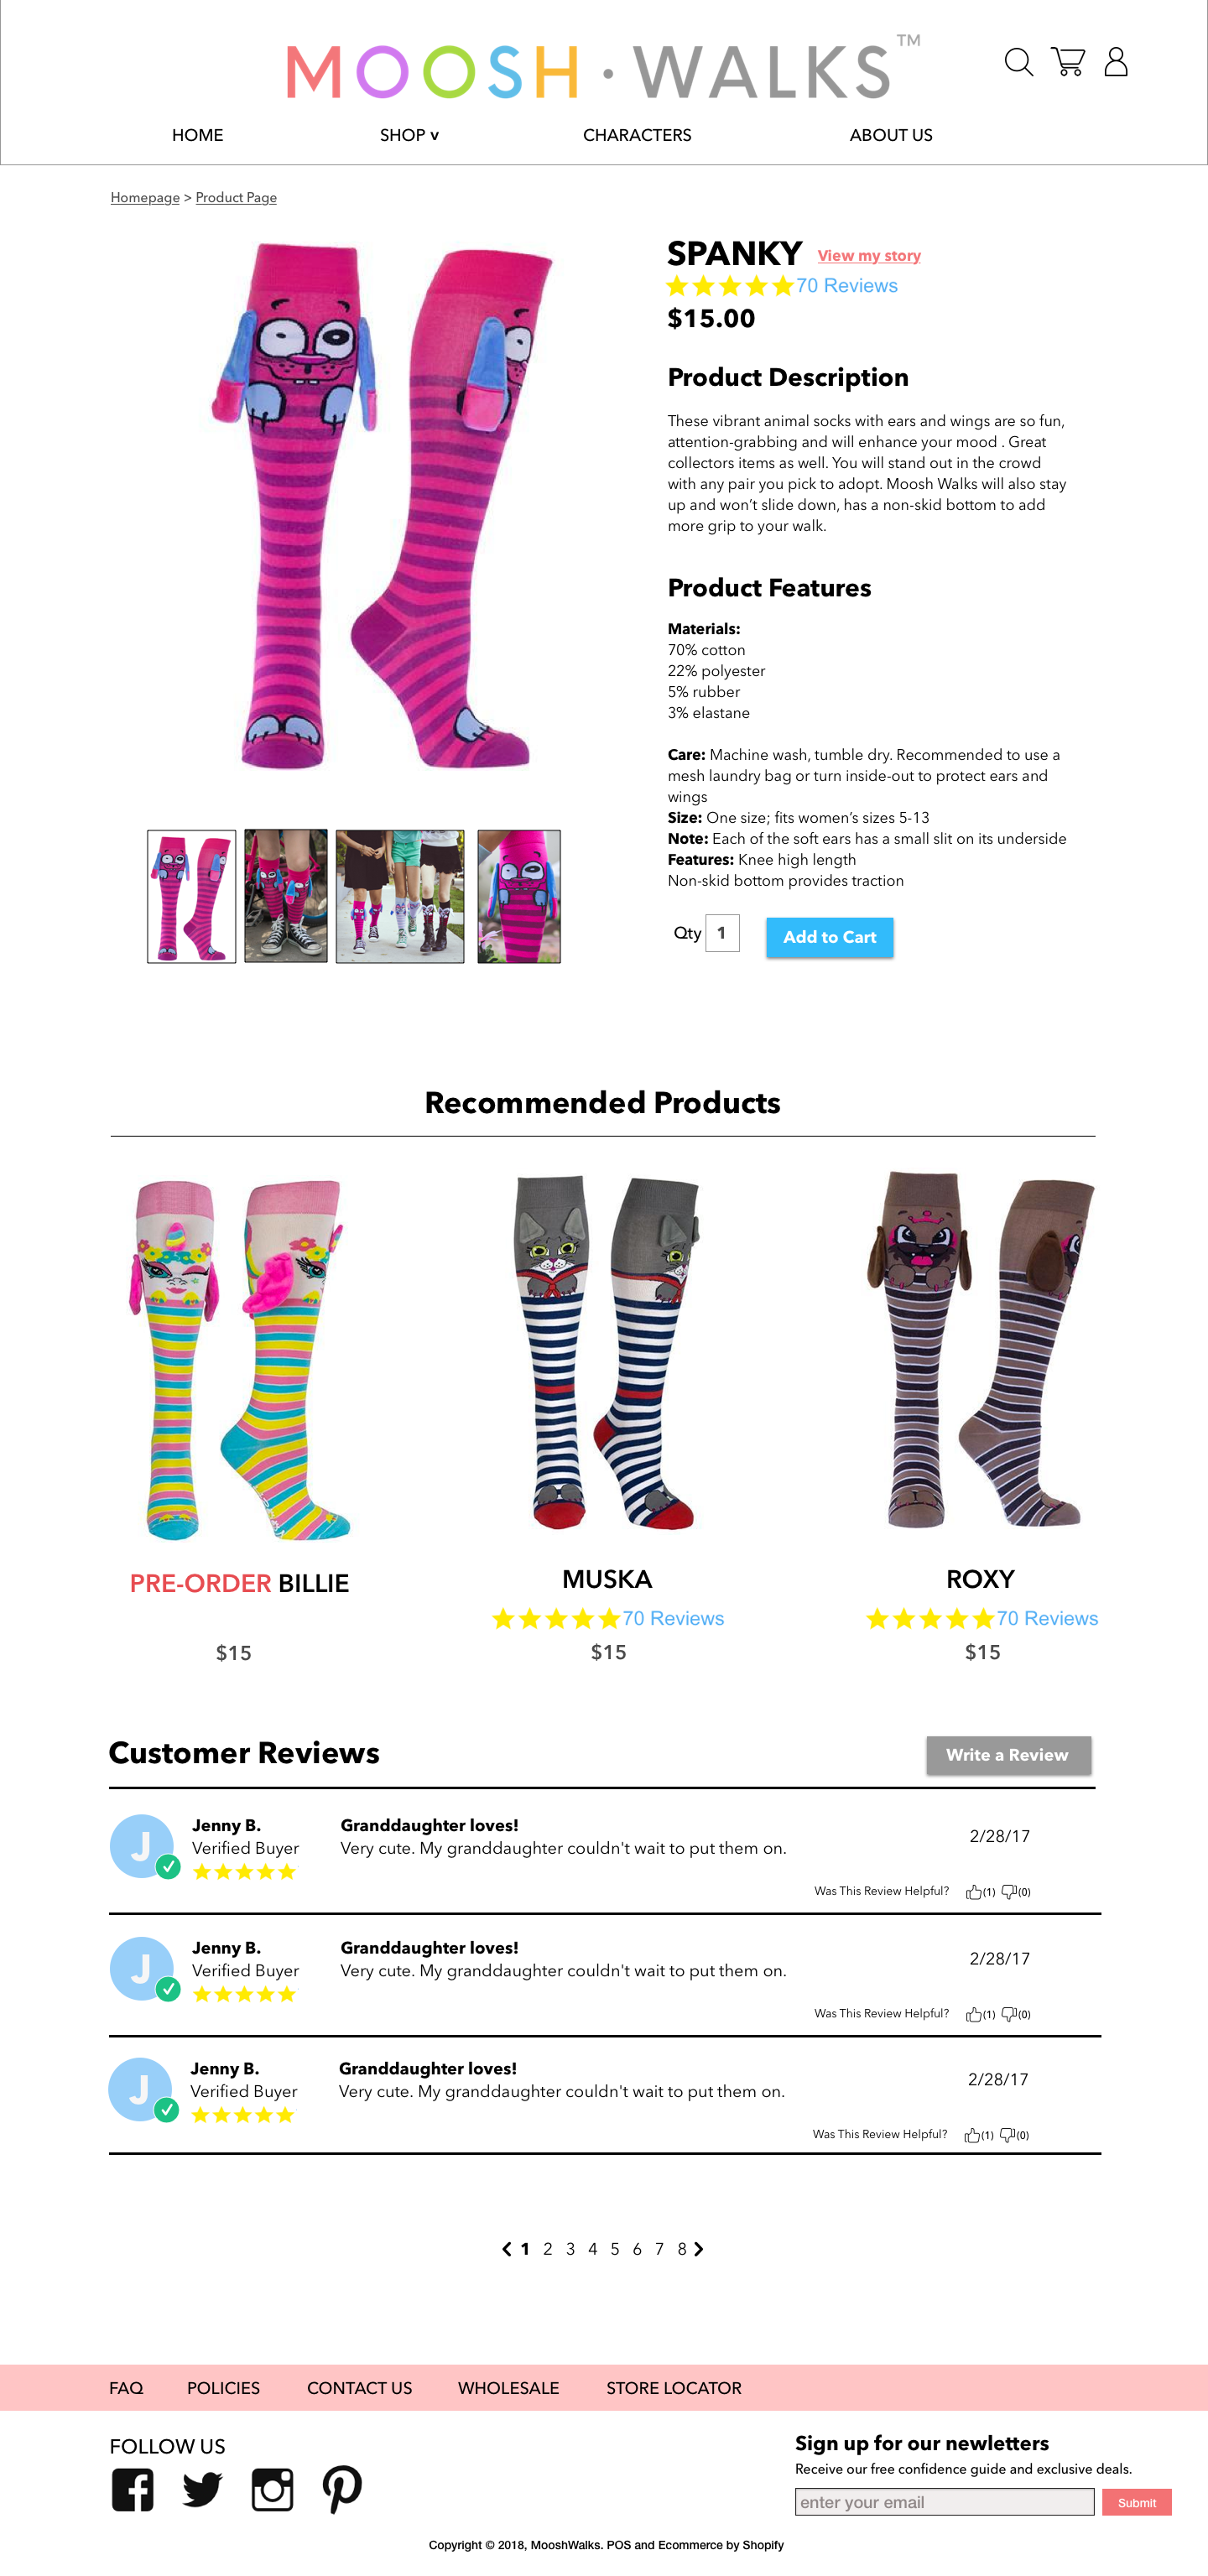 Product Detail Page.png